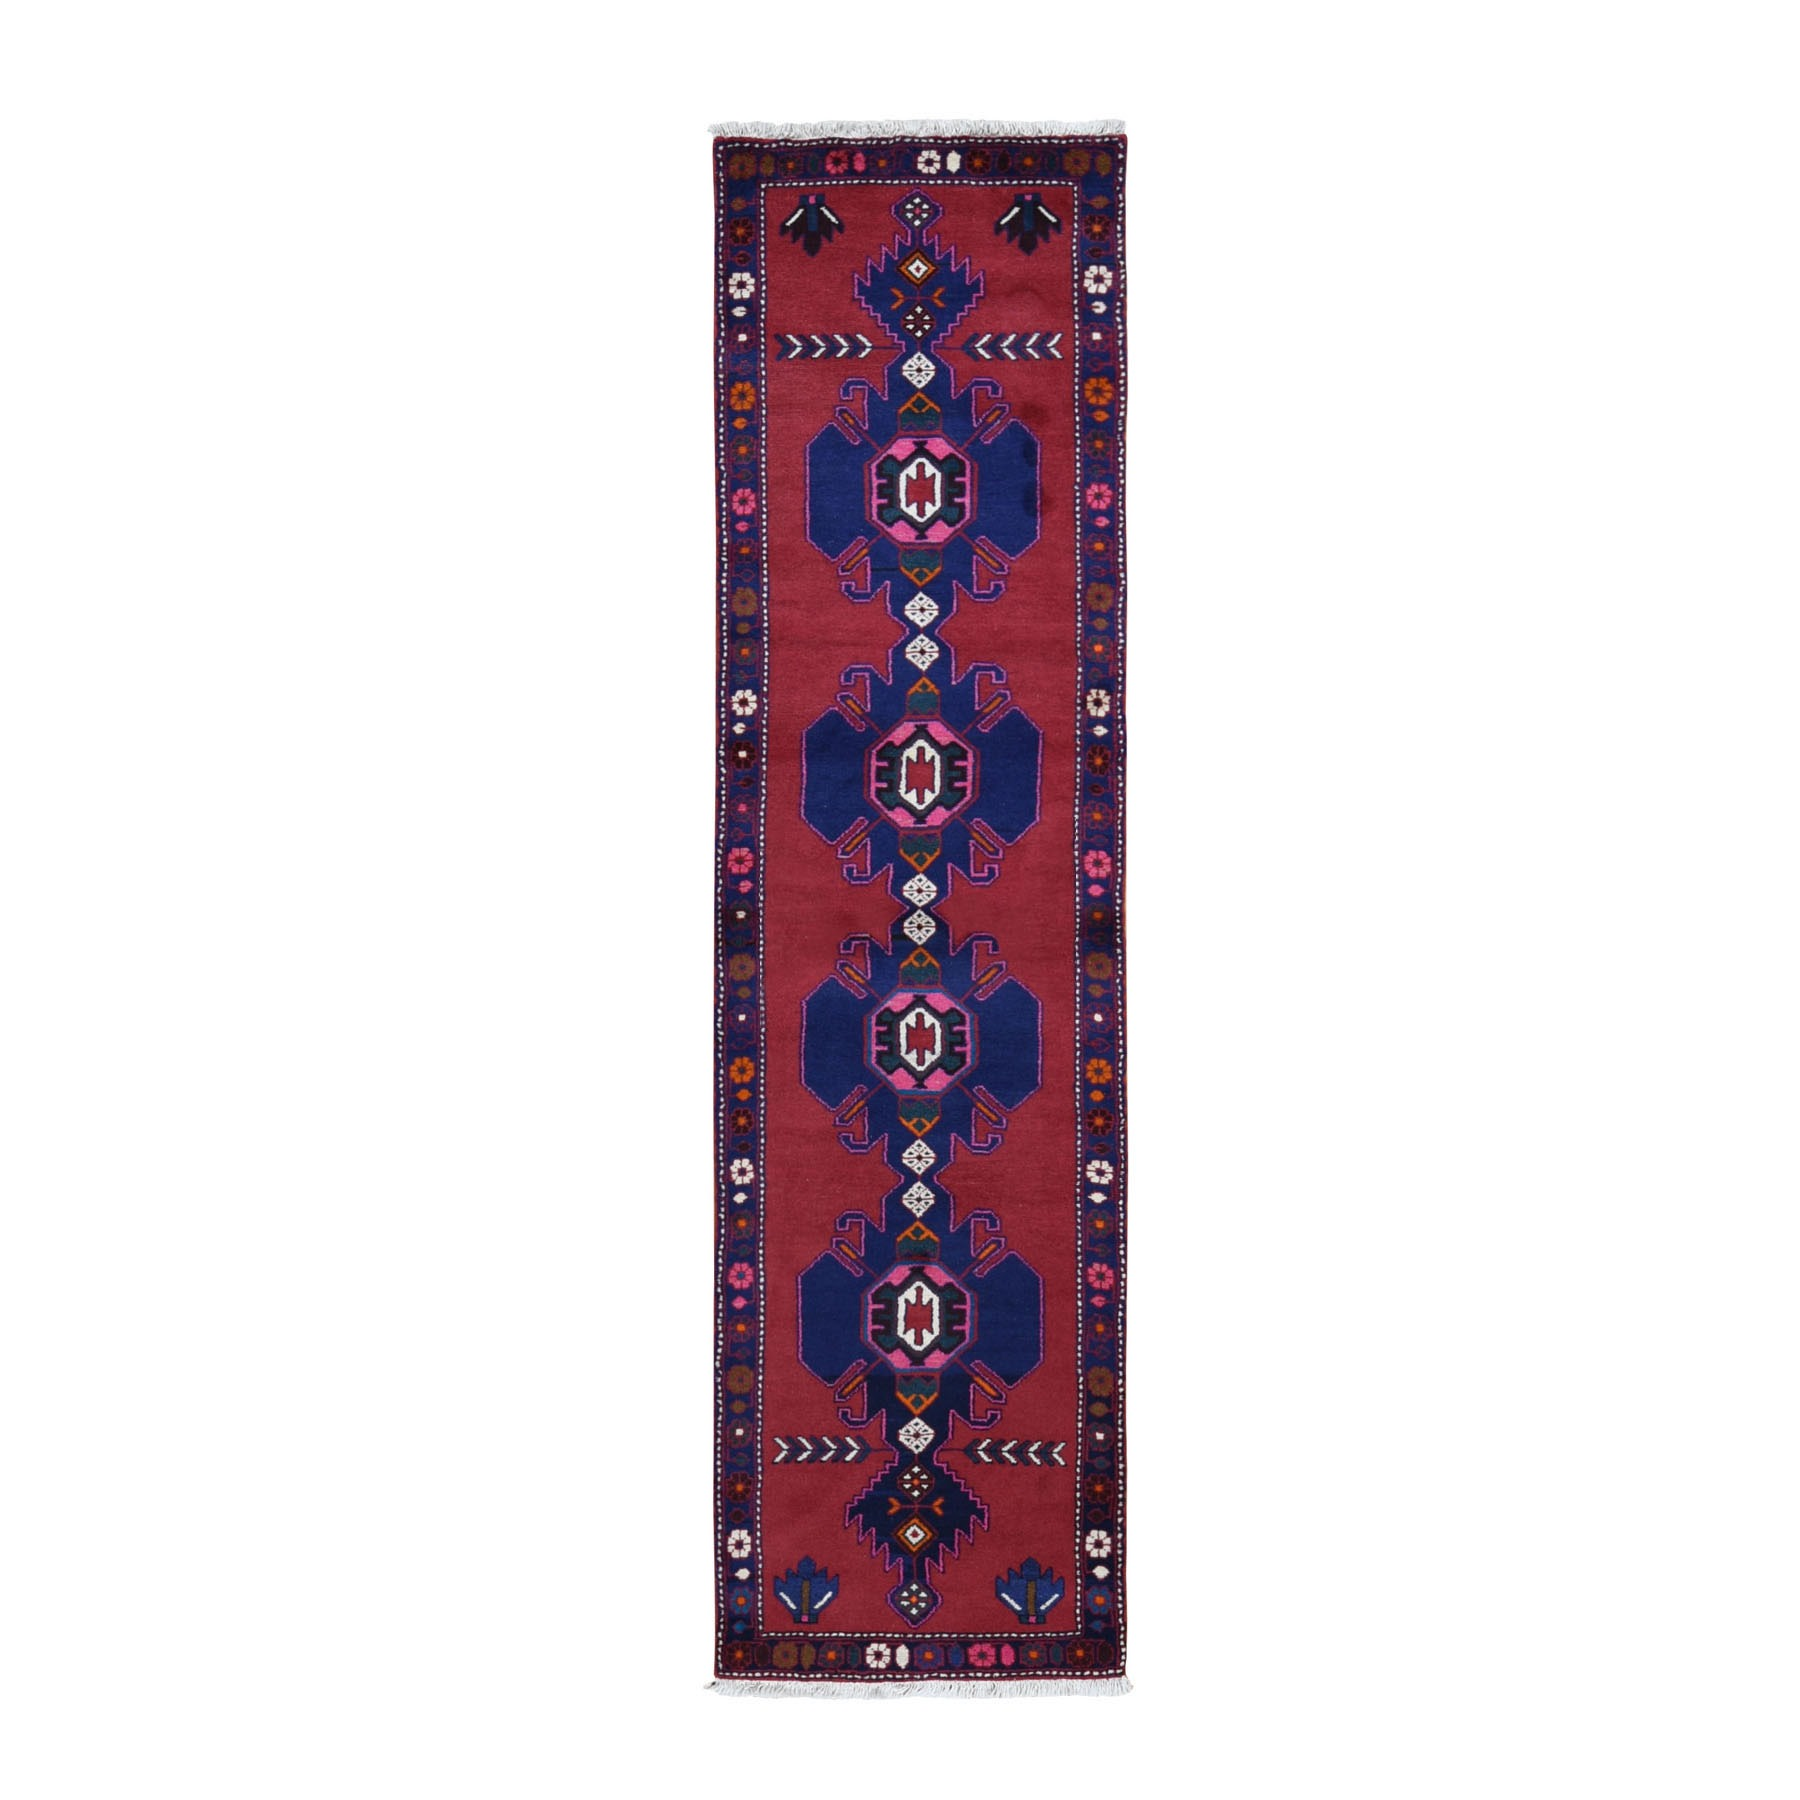 "2'6""X9'6"" Red New Persian Hamadan Pure Wool Repetitive Medallion Design Open Field Oriental Runner Rug moad986a"